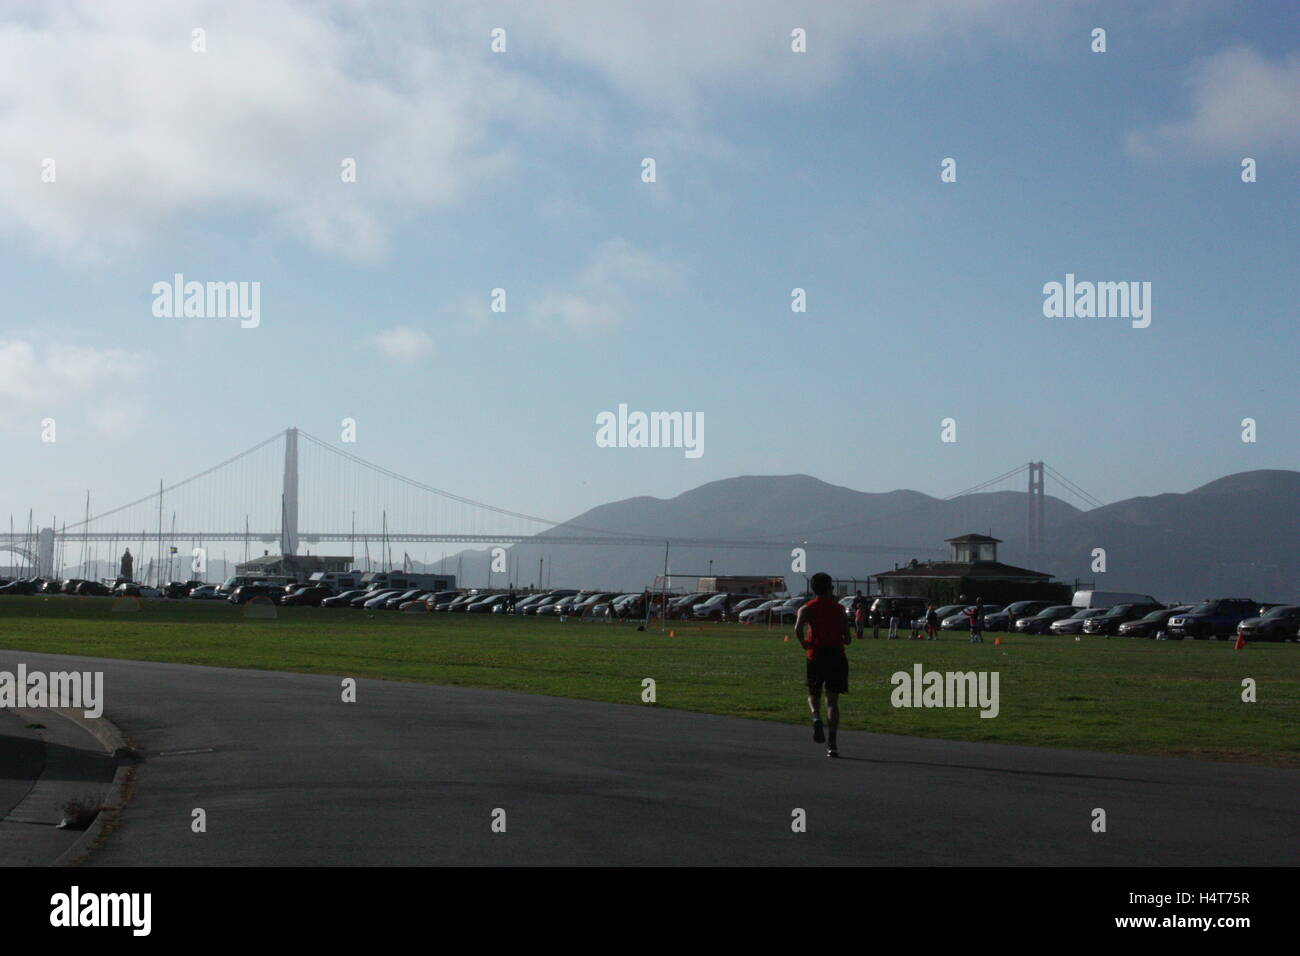 Man cycling heading for the Golden Gate Bridge in San Francisco alongside the car park and the grass - Stock Image